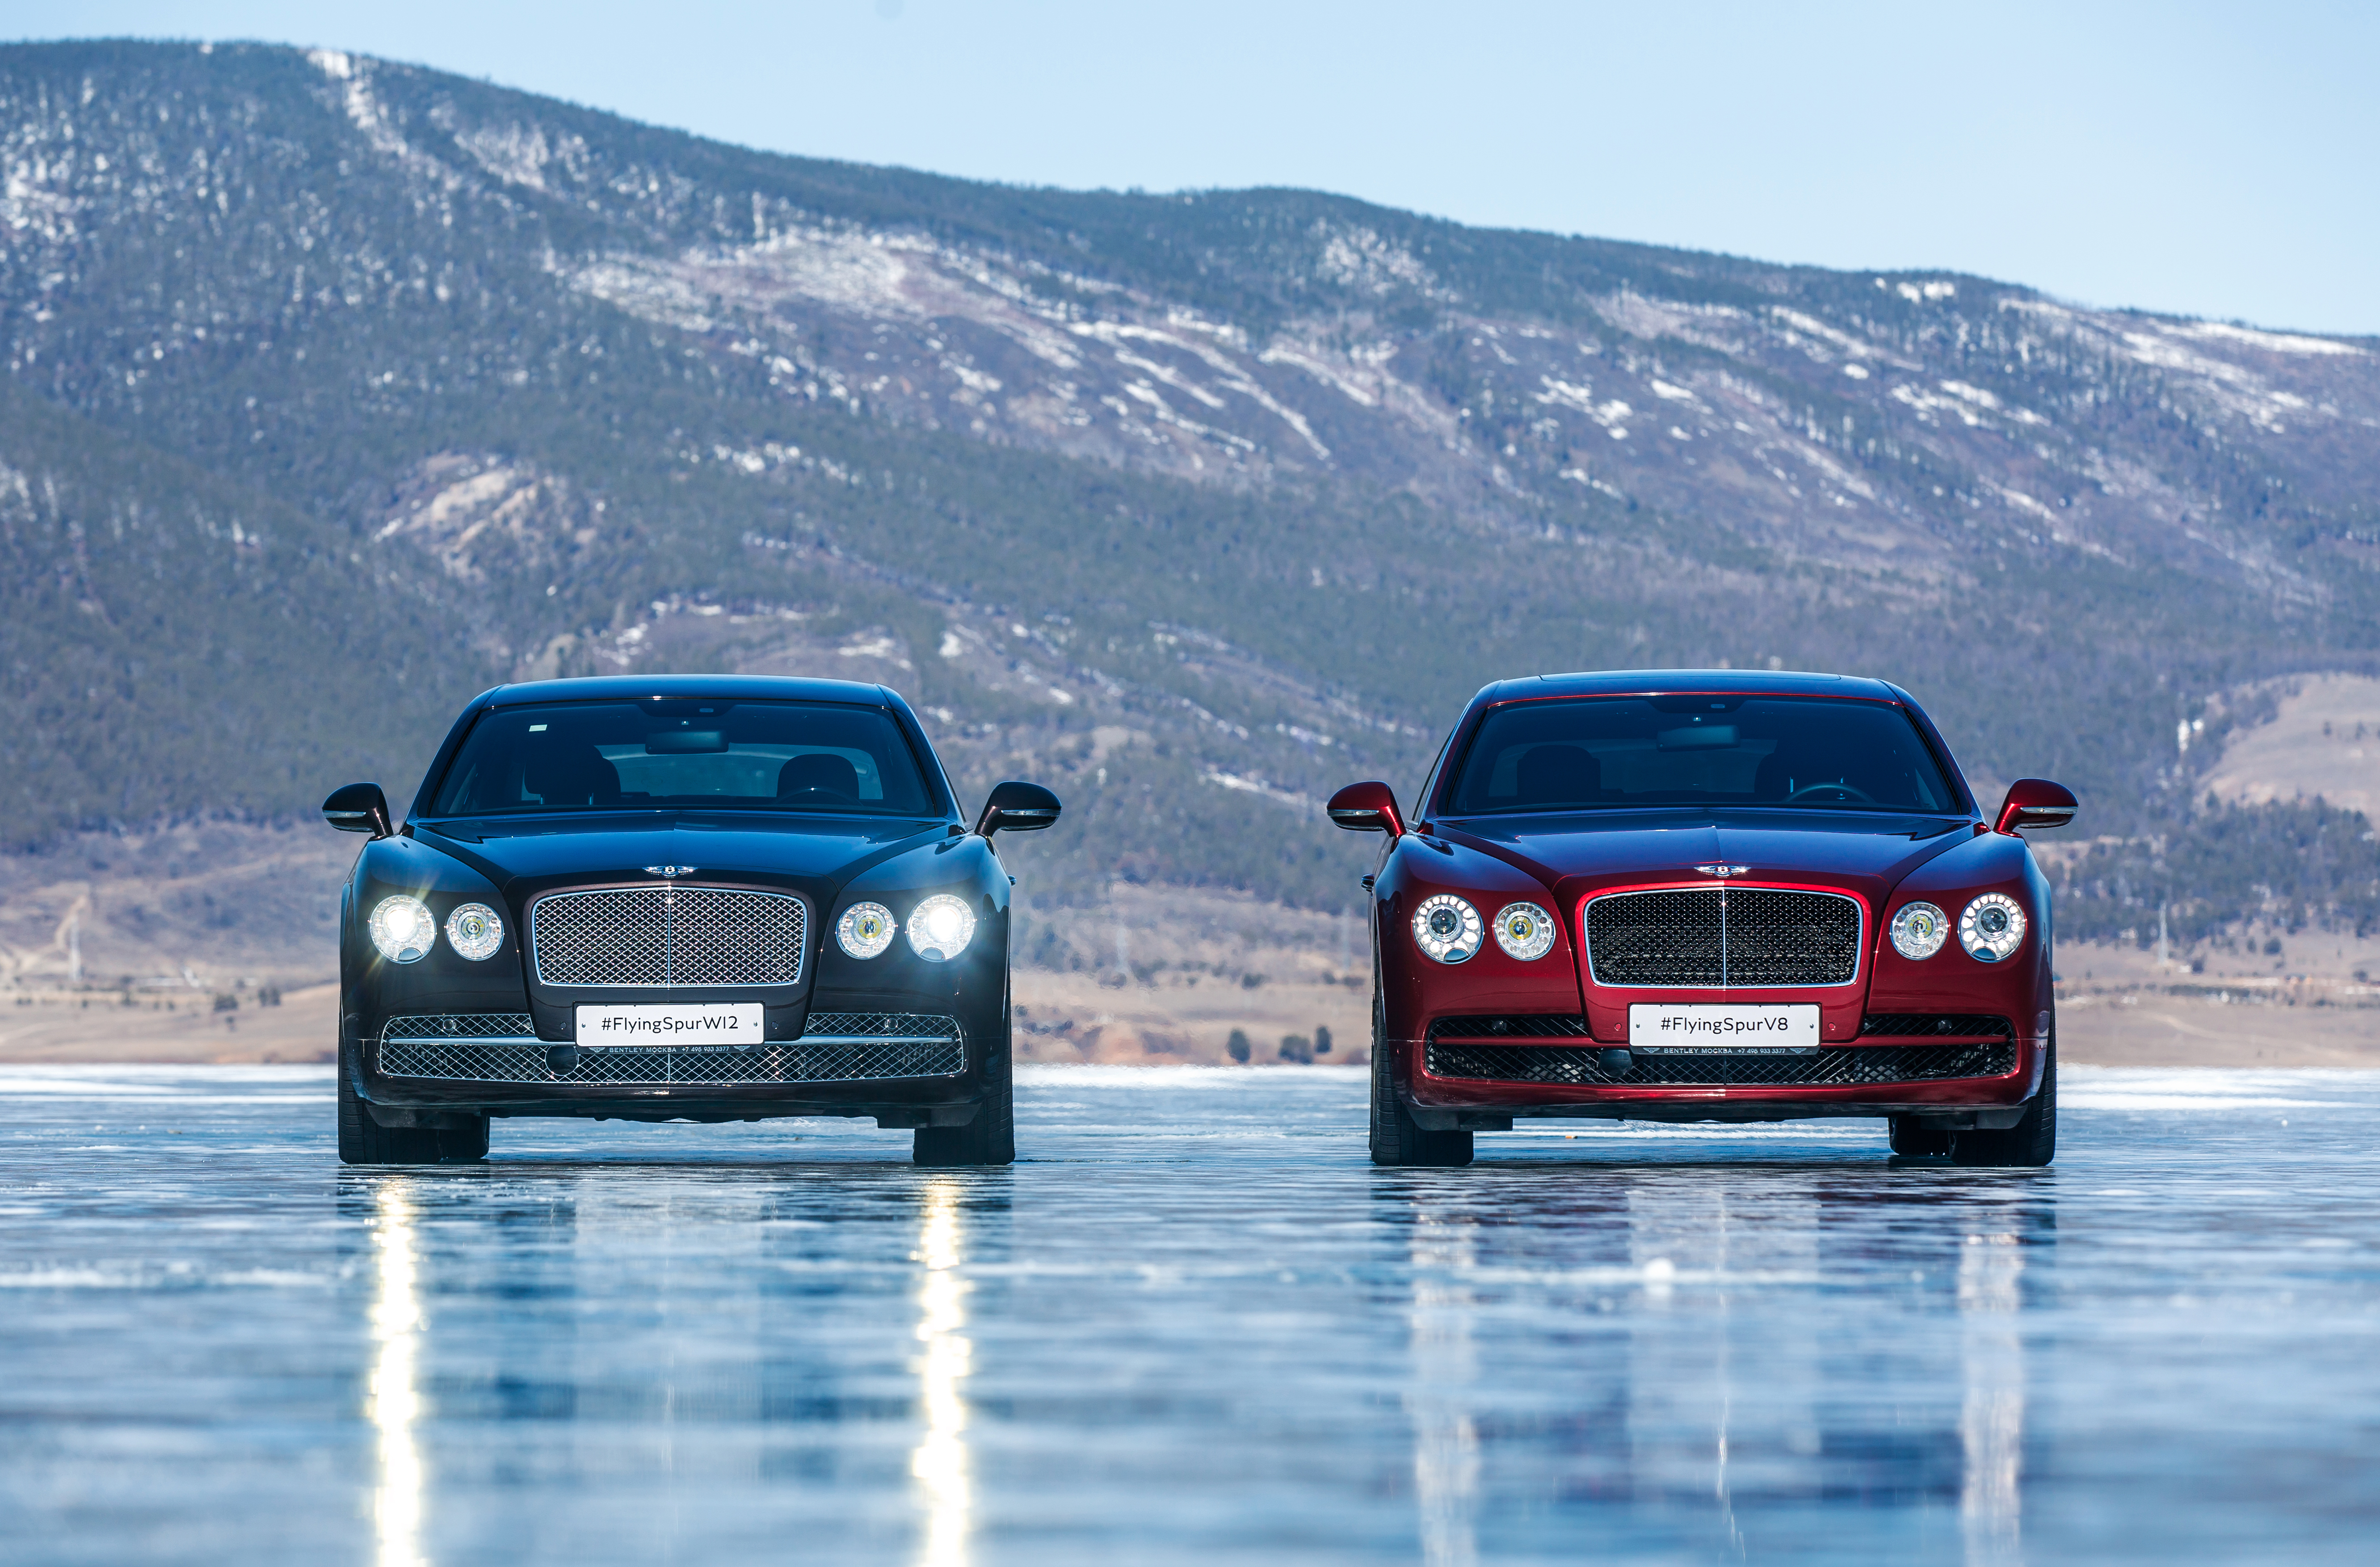 Flying Spur Family W 12 and V8 on Baikal Ice